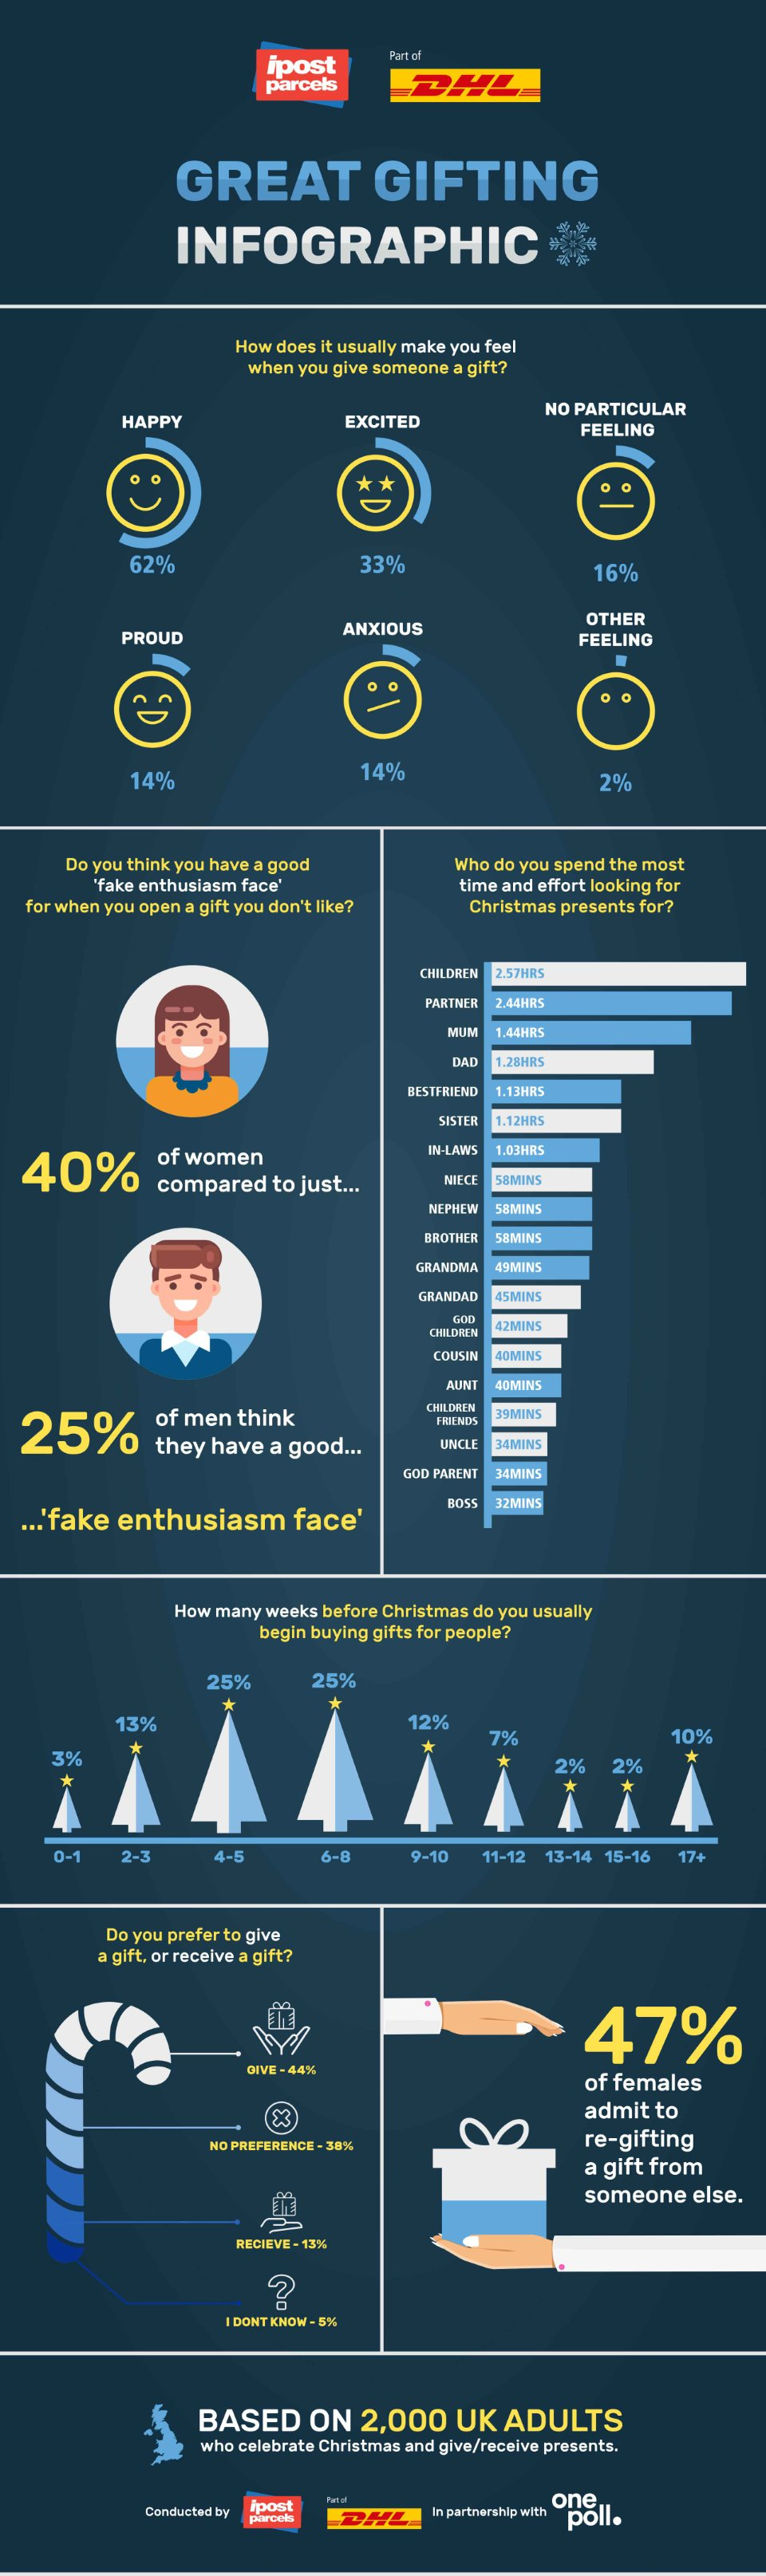 infographic showing results of a gifting survey